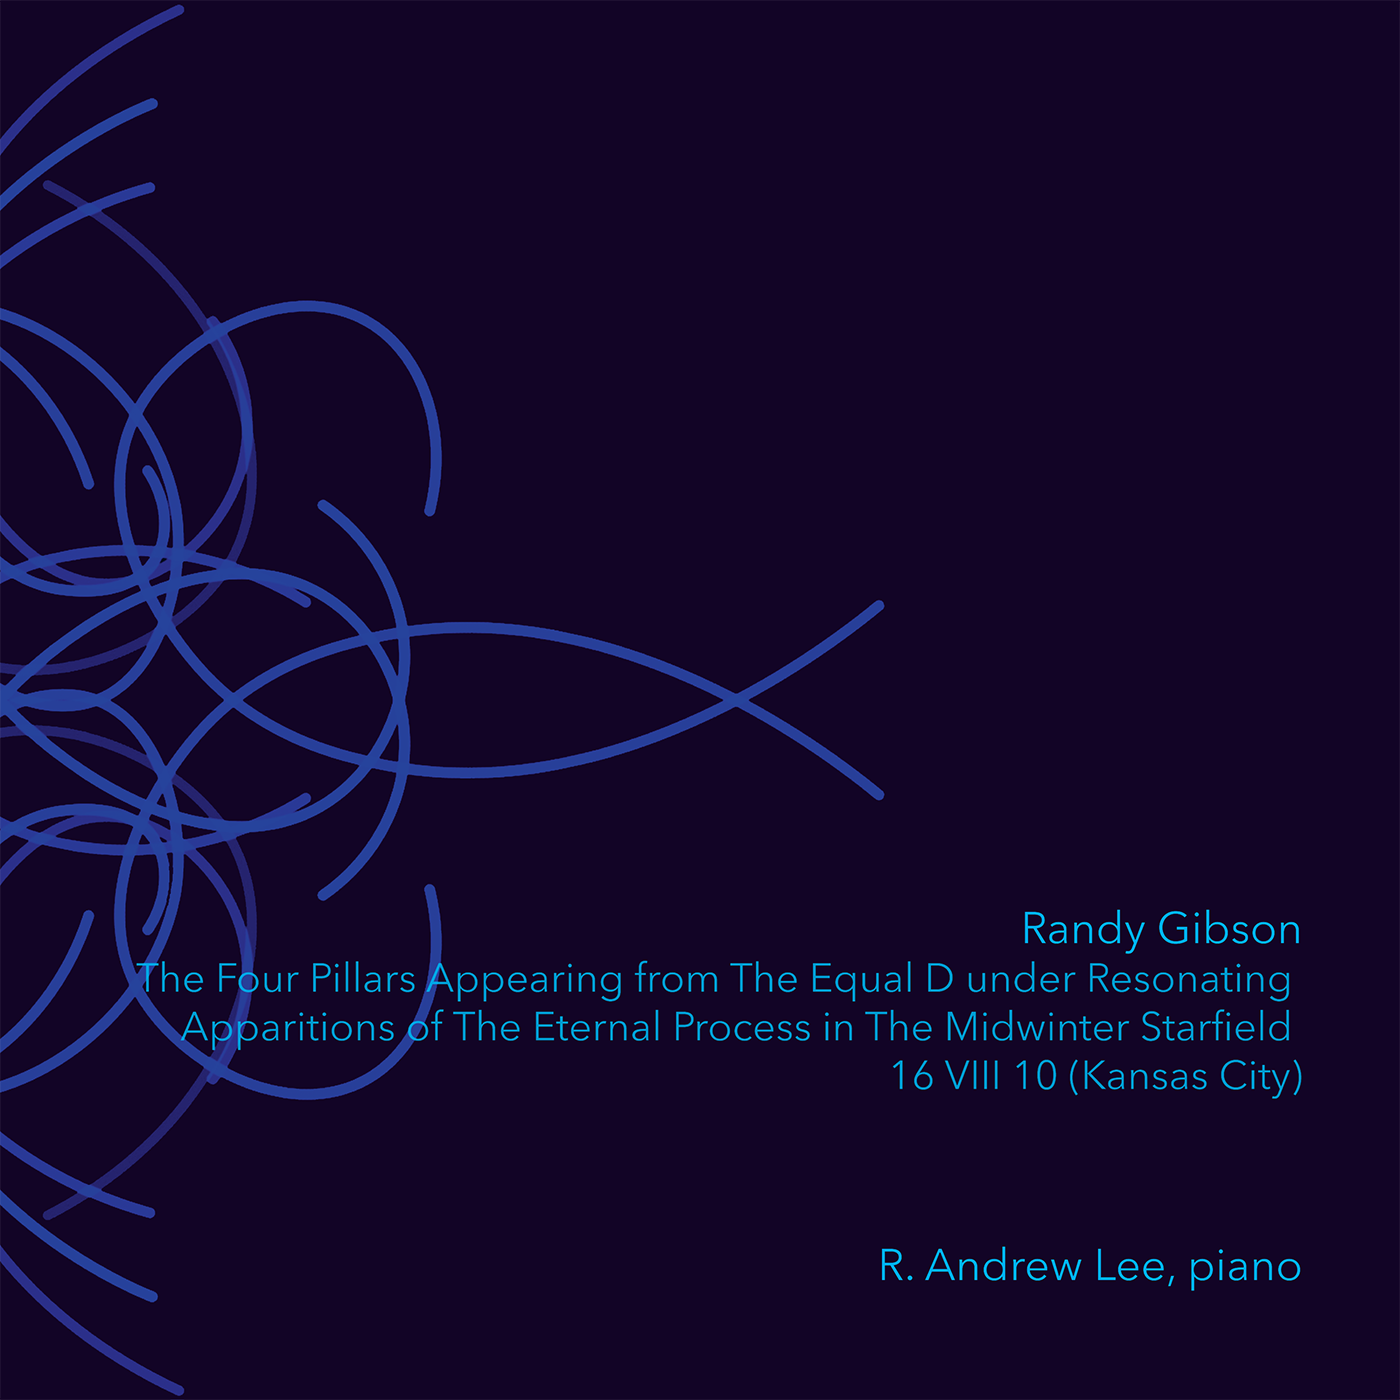 Randy Gibson's <em>The Four Pillars Appearing from The Equal D under Resonating Apparitions of The Eternal Process in The Midwinter Starfield 16 VIII 10 (Kansas City)</em>